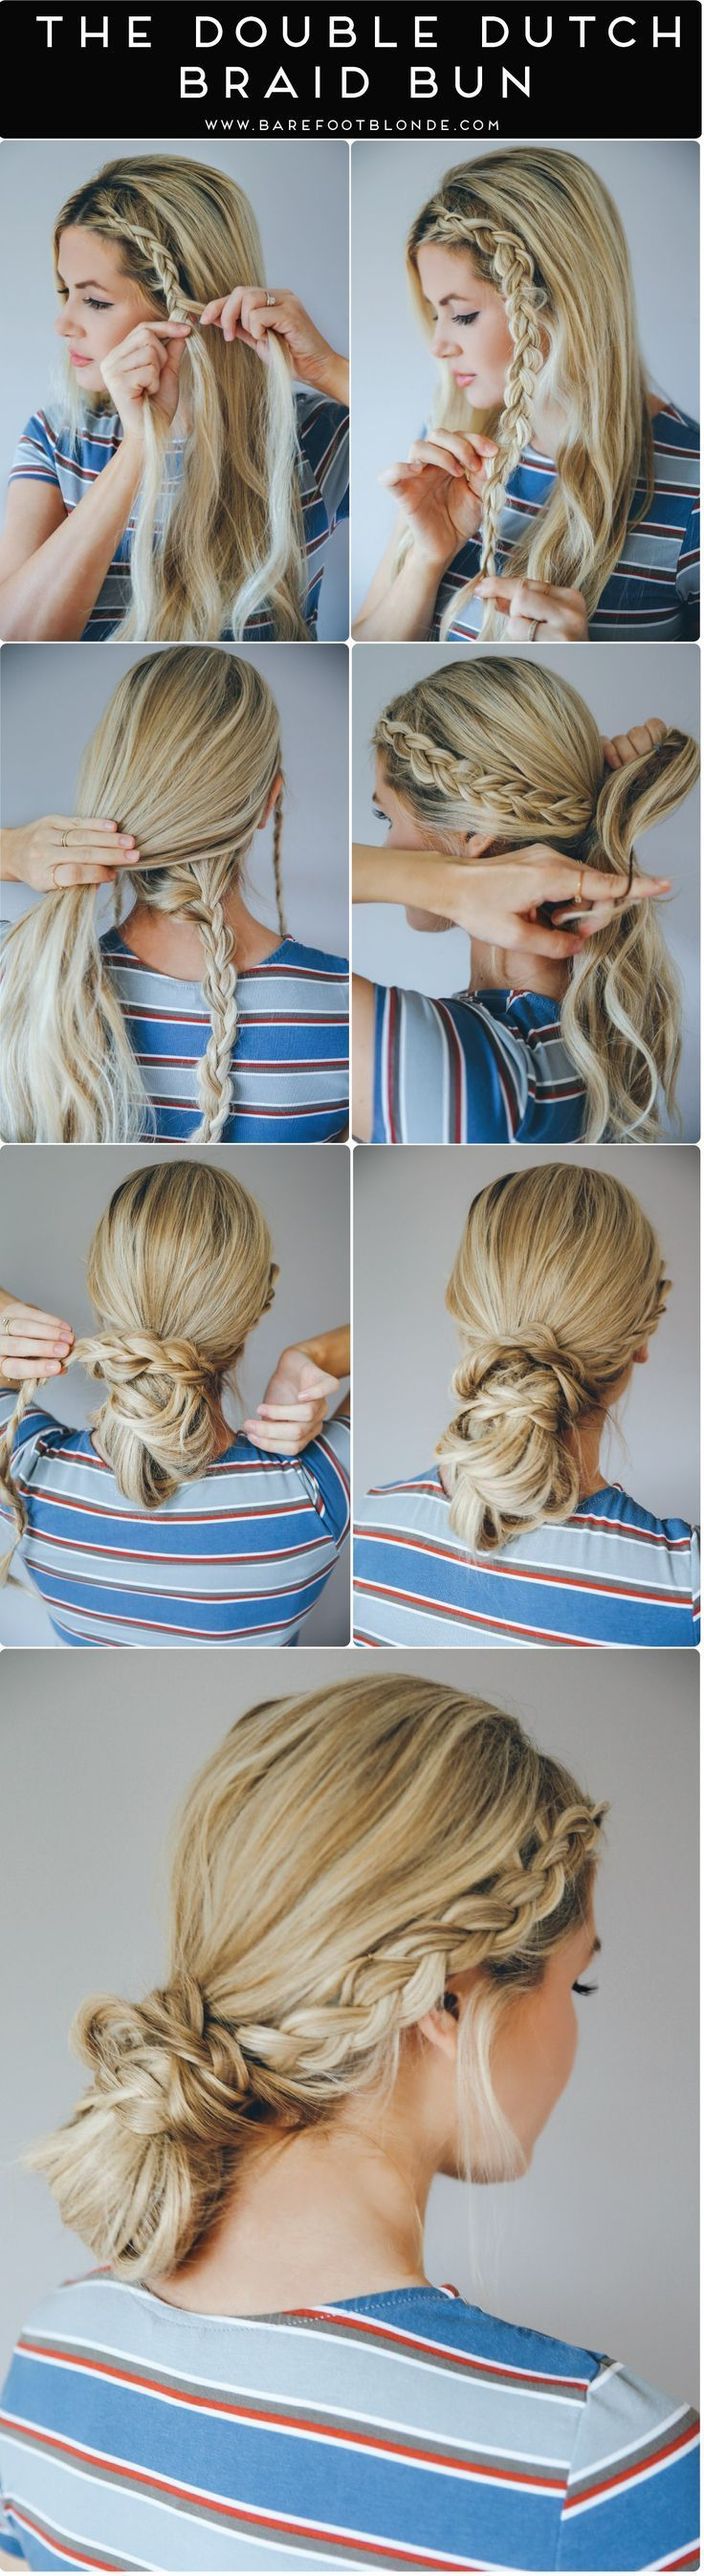 Best 25 Bad hair day ideas on Pinterest